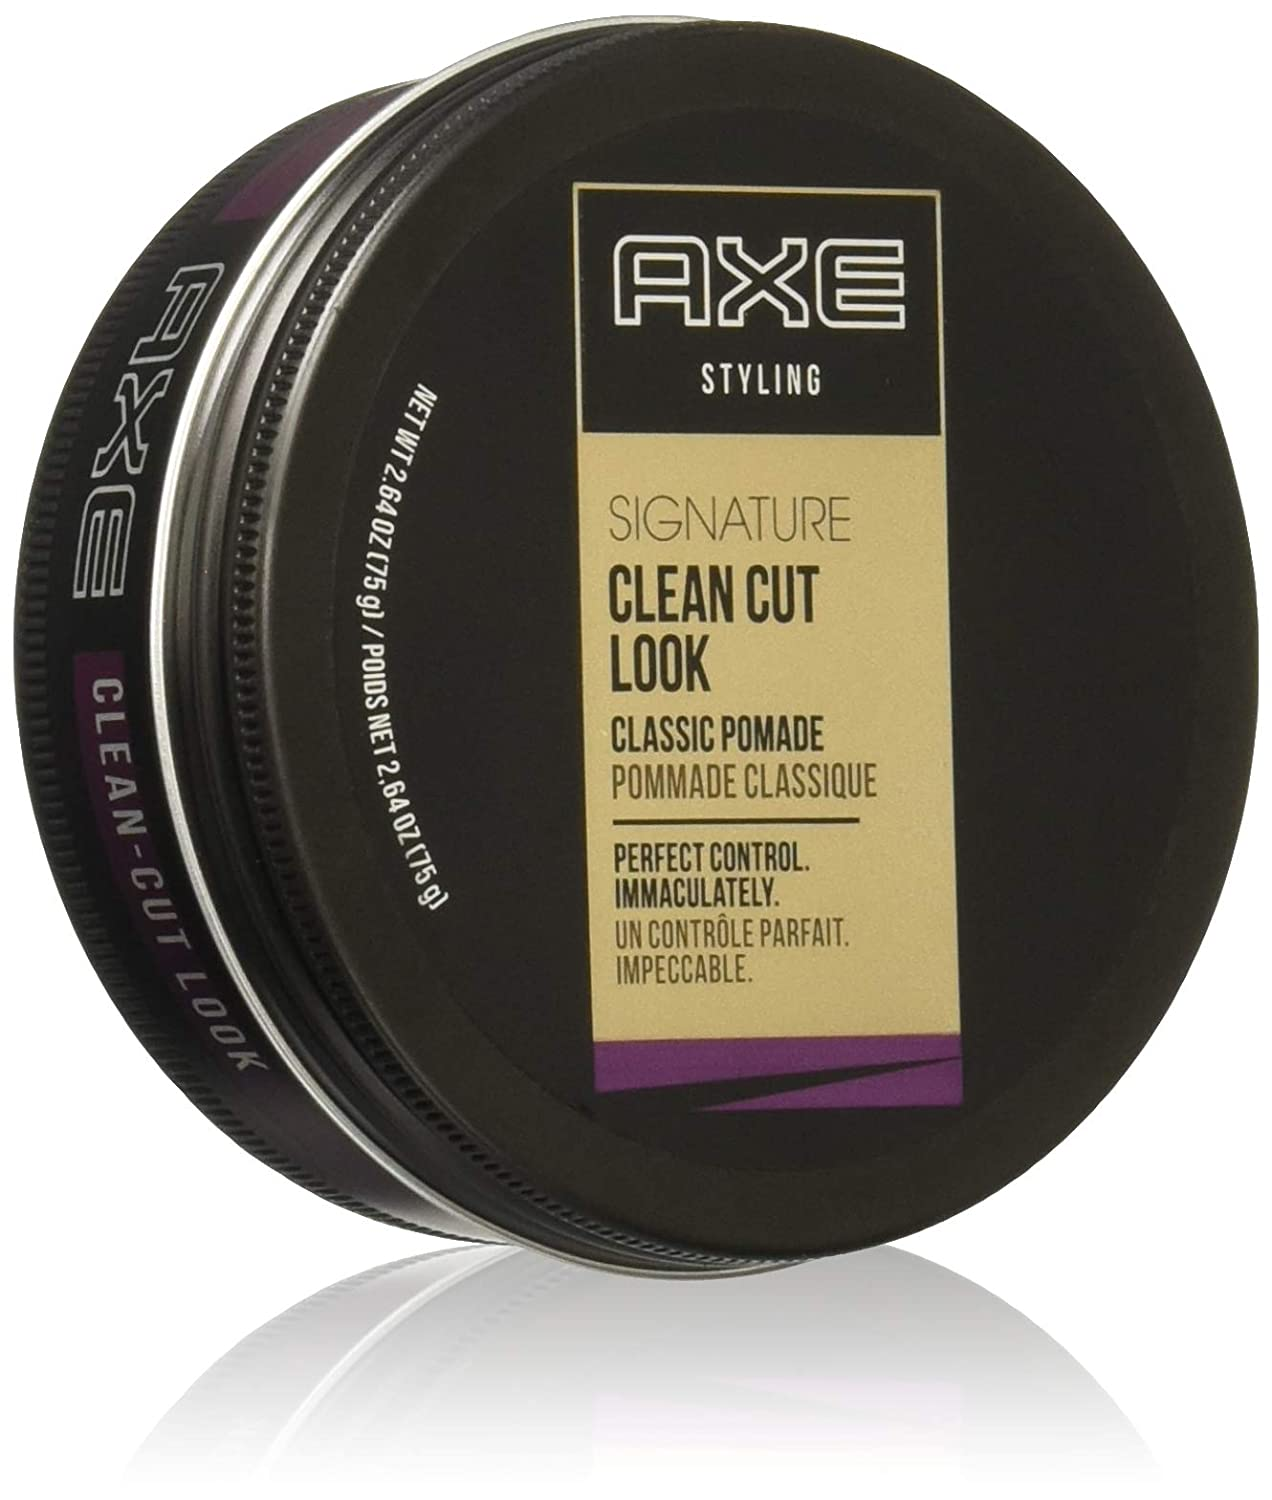 Amazon.com : AXE Signature Clean Cut Look Classic Pomade, 2.64 oz ...